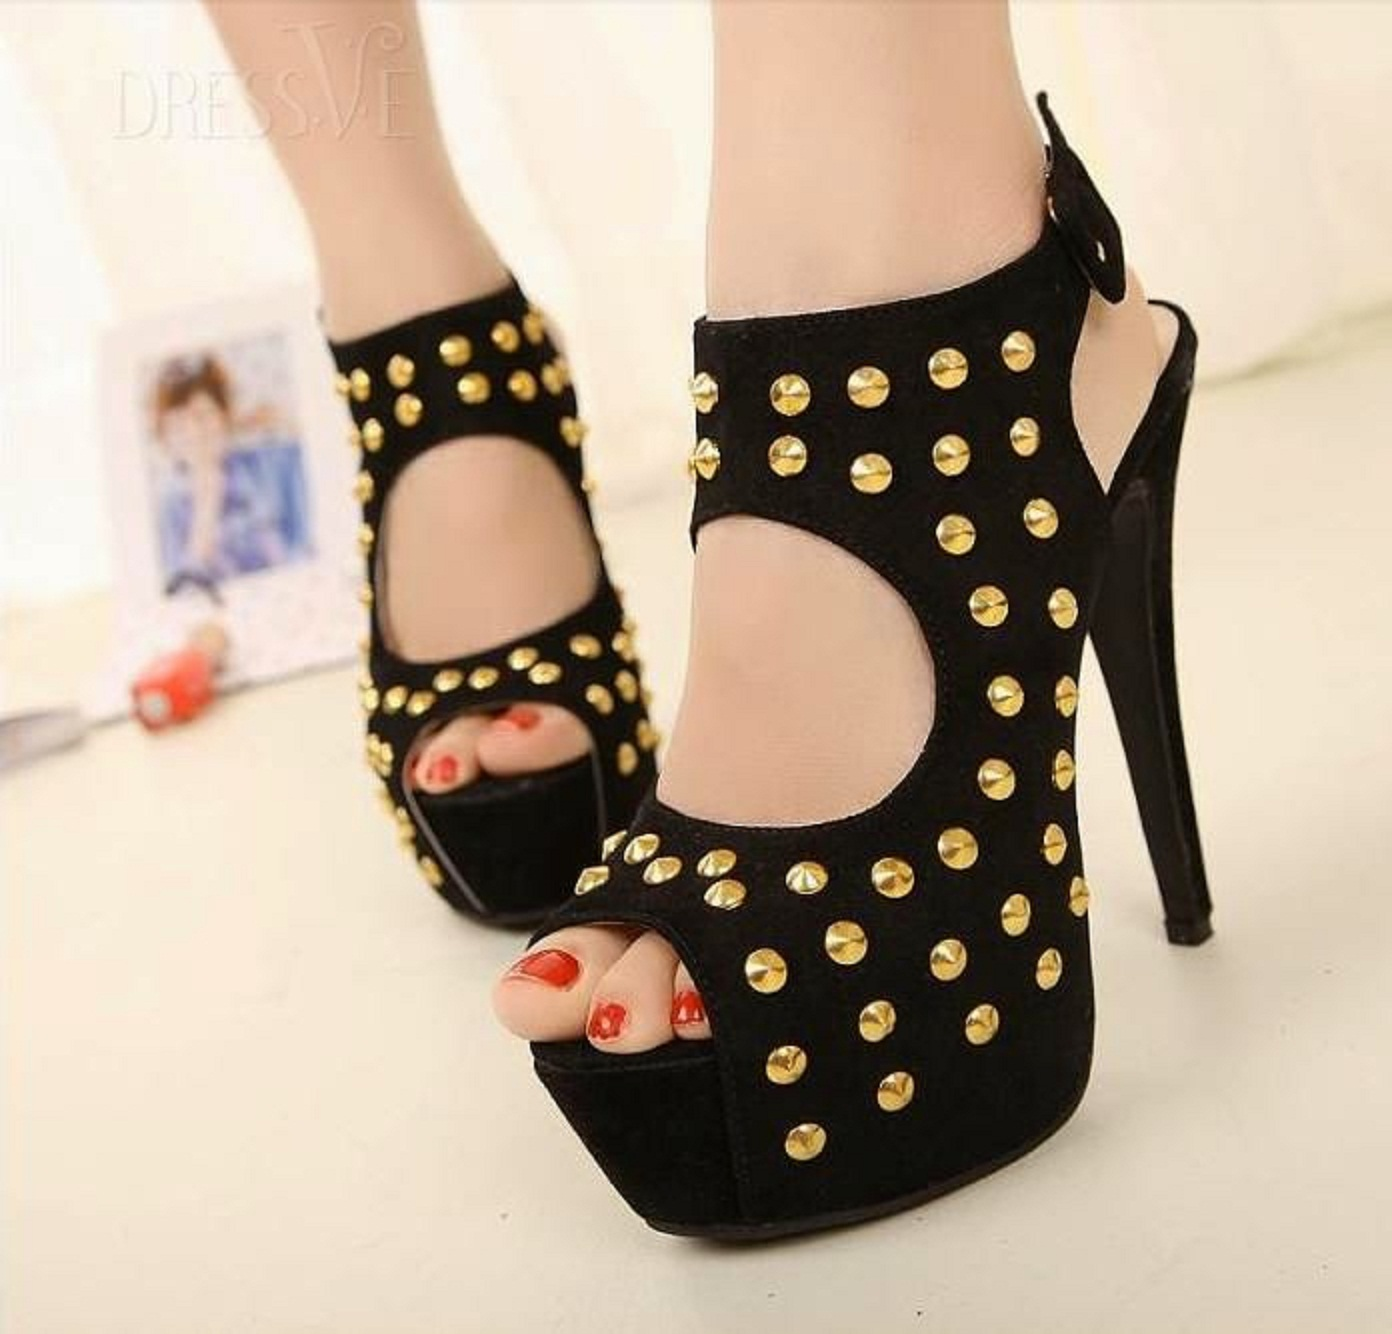 Latest Design Women Wedge Shoes High Heel Shoes Images HD ...